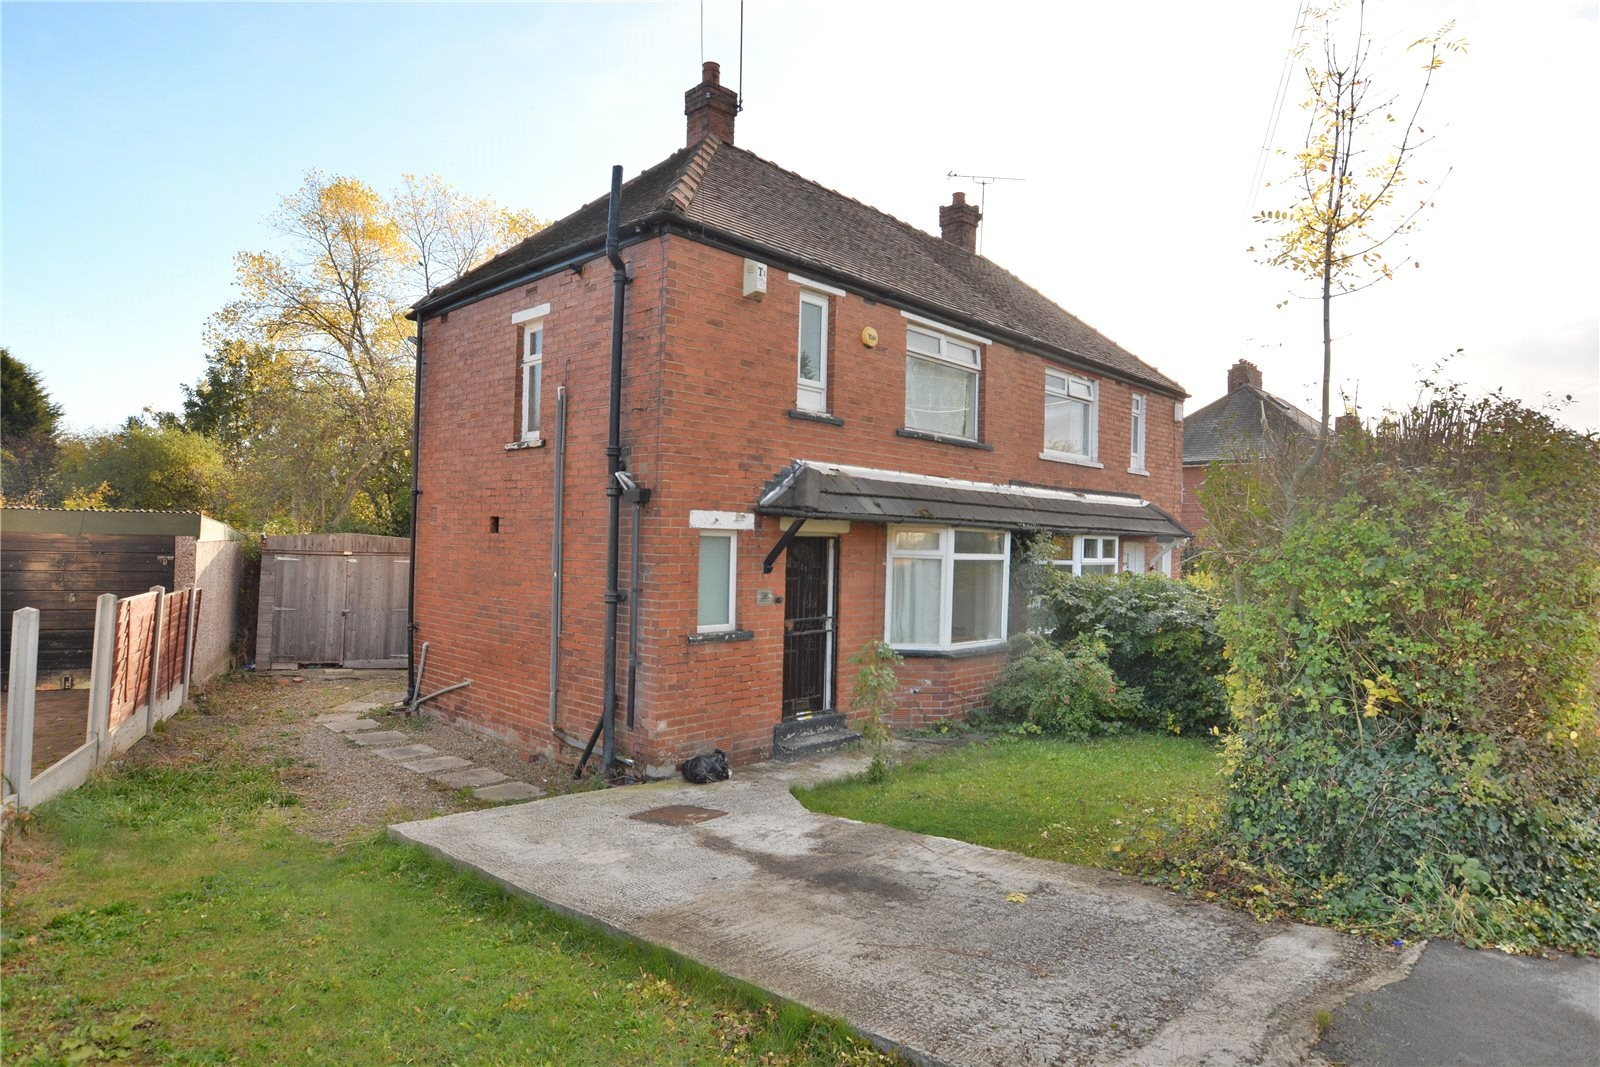 property for sale in Oakwood, exterior of red brick semi detached home